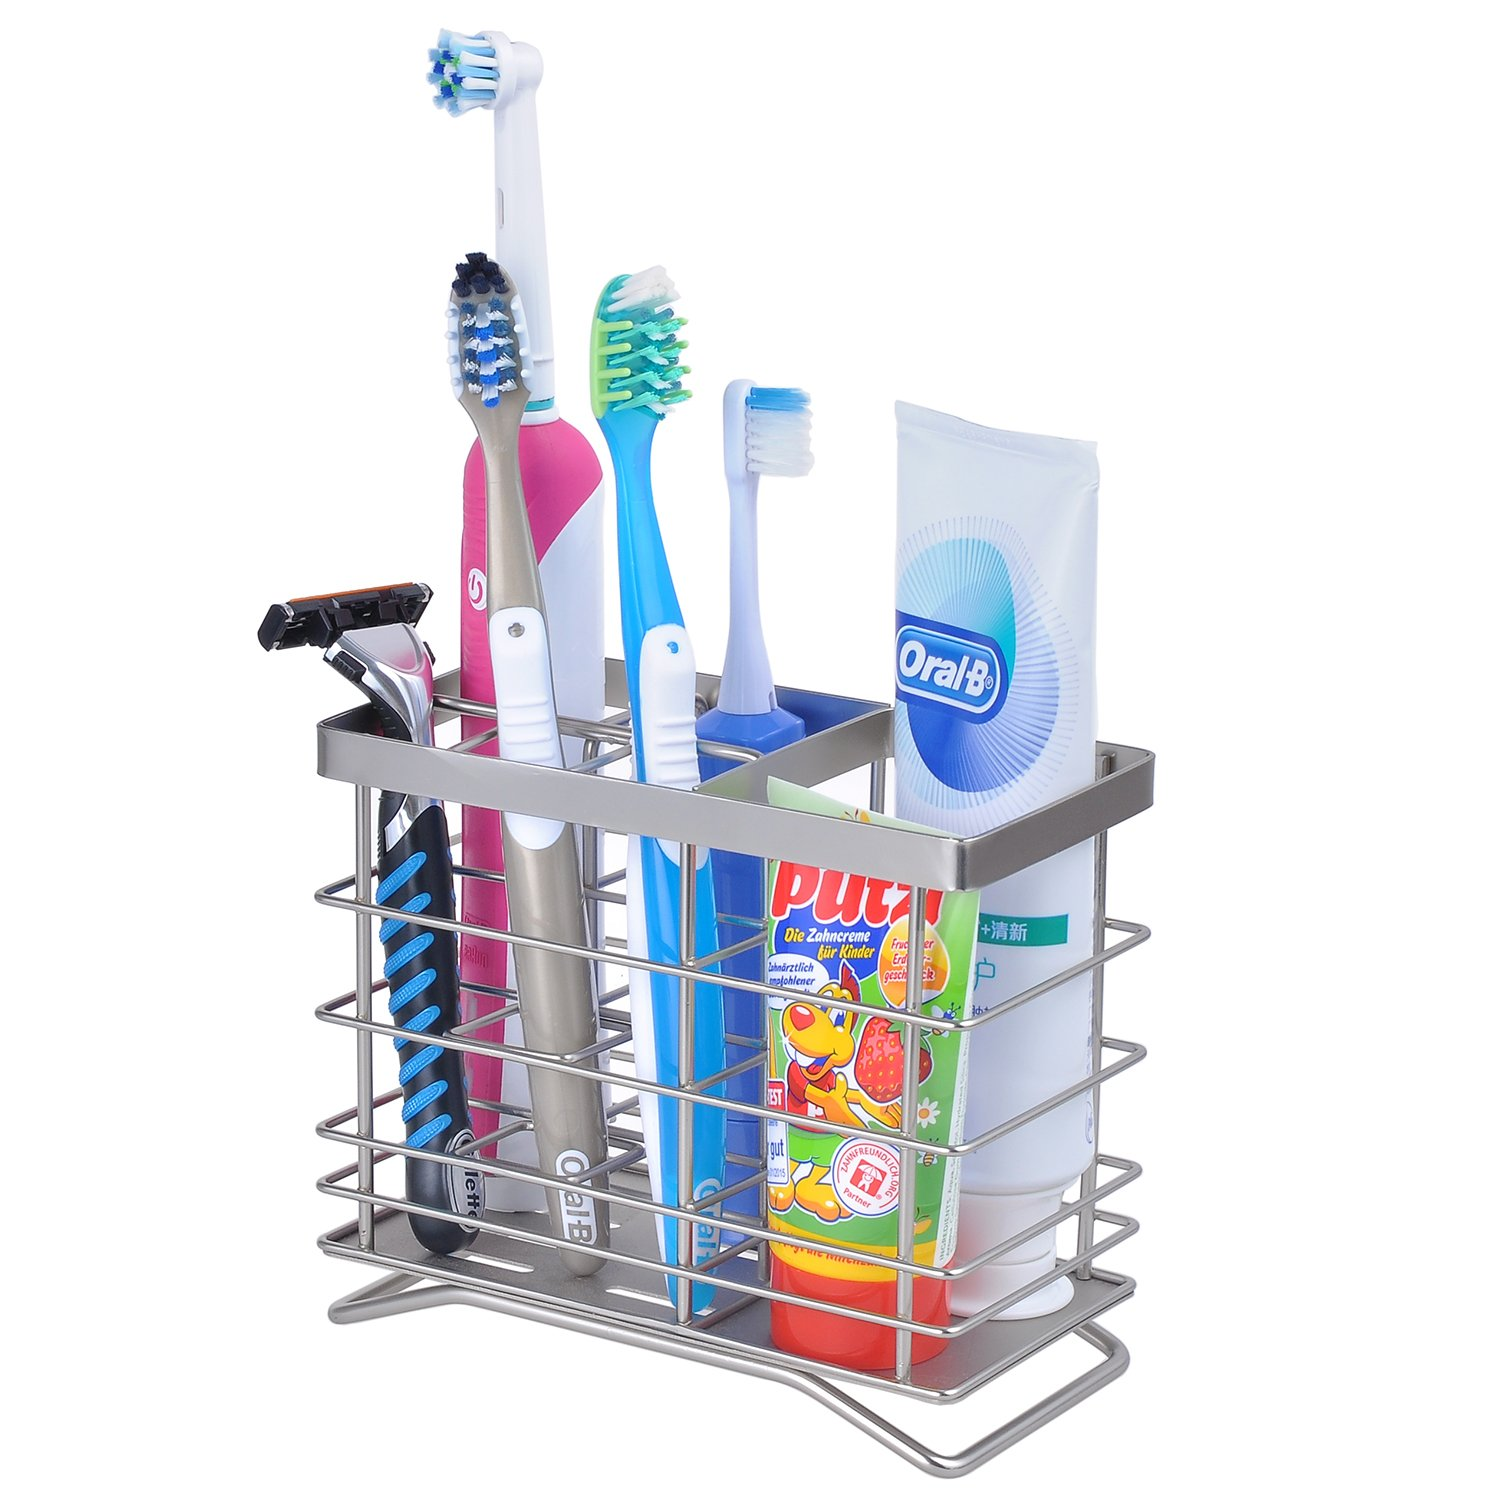 Stainless Steel Electric Toothbrush Head Holder;Holder Organizer OCTOPODIS